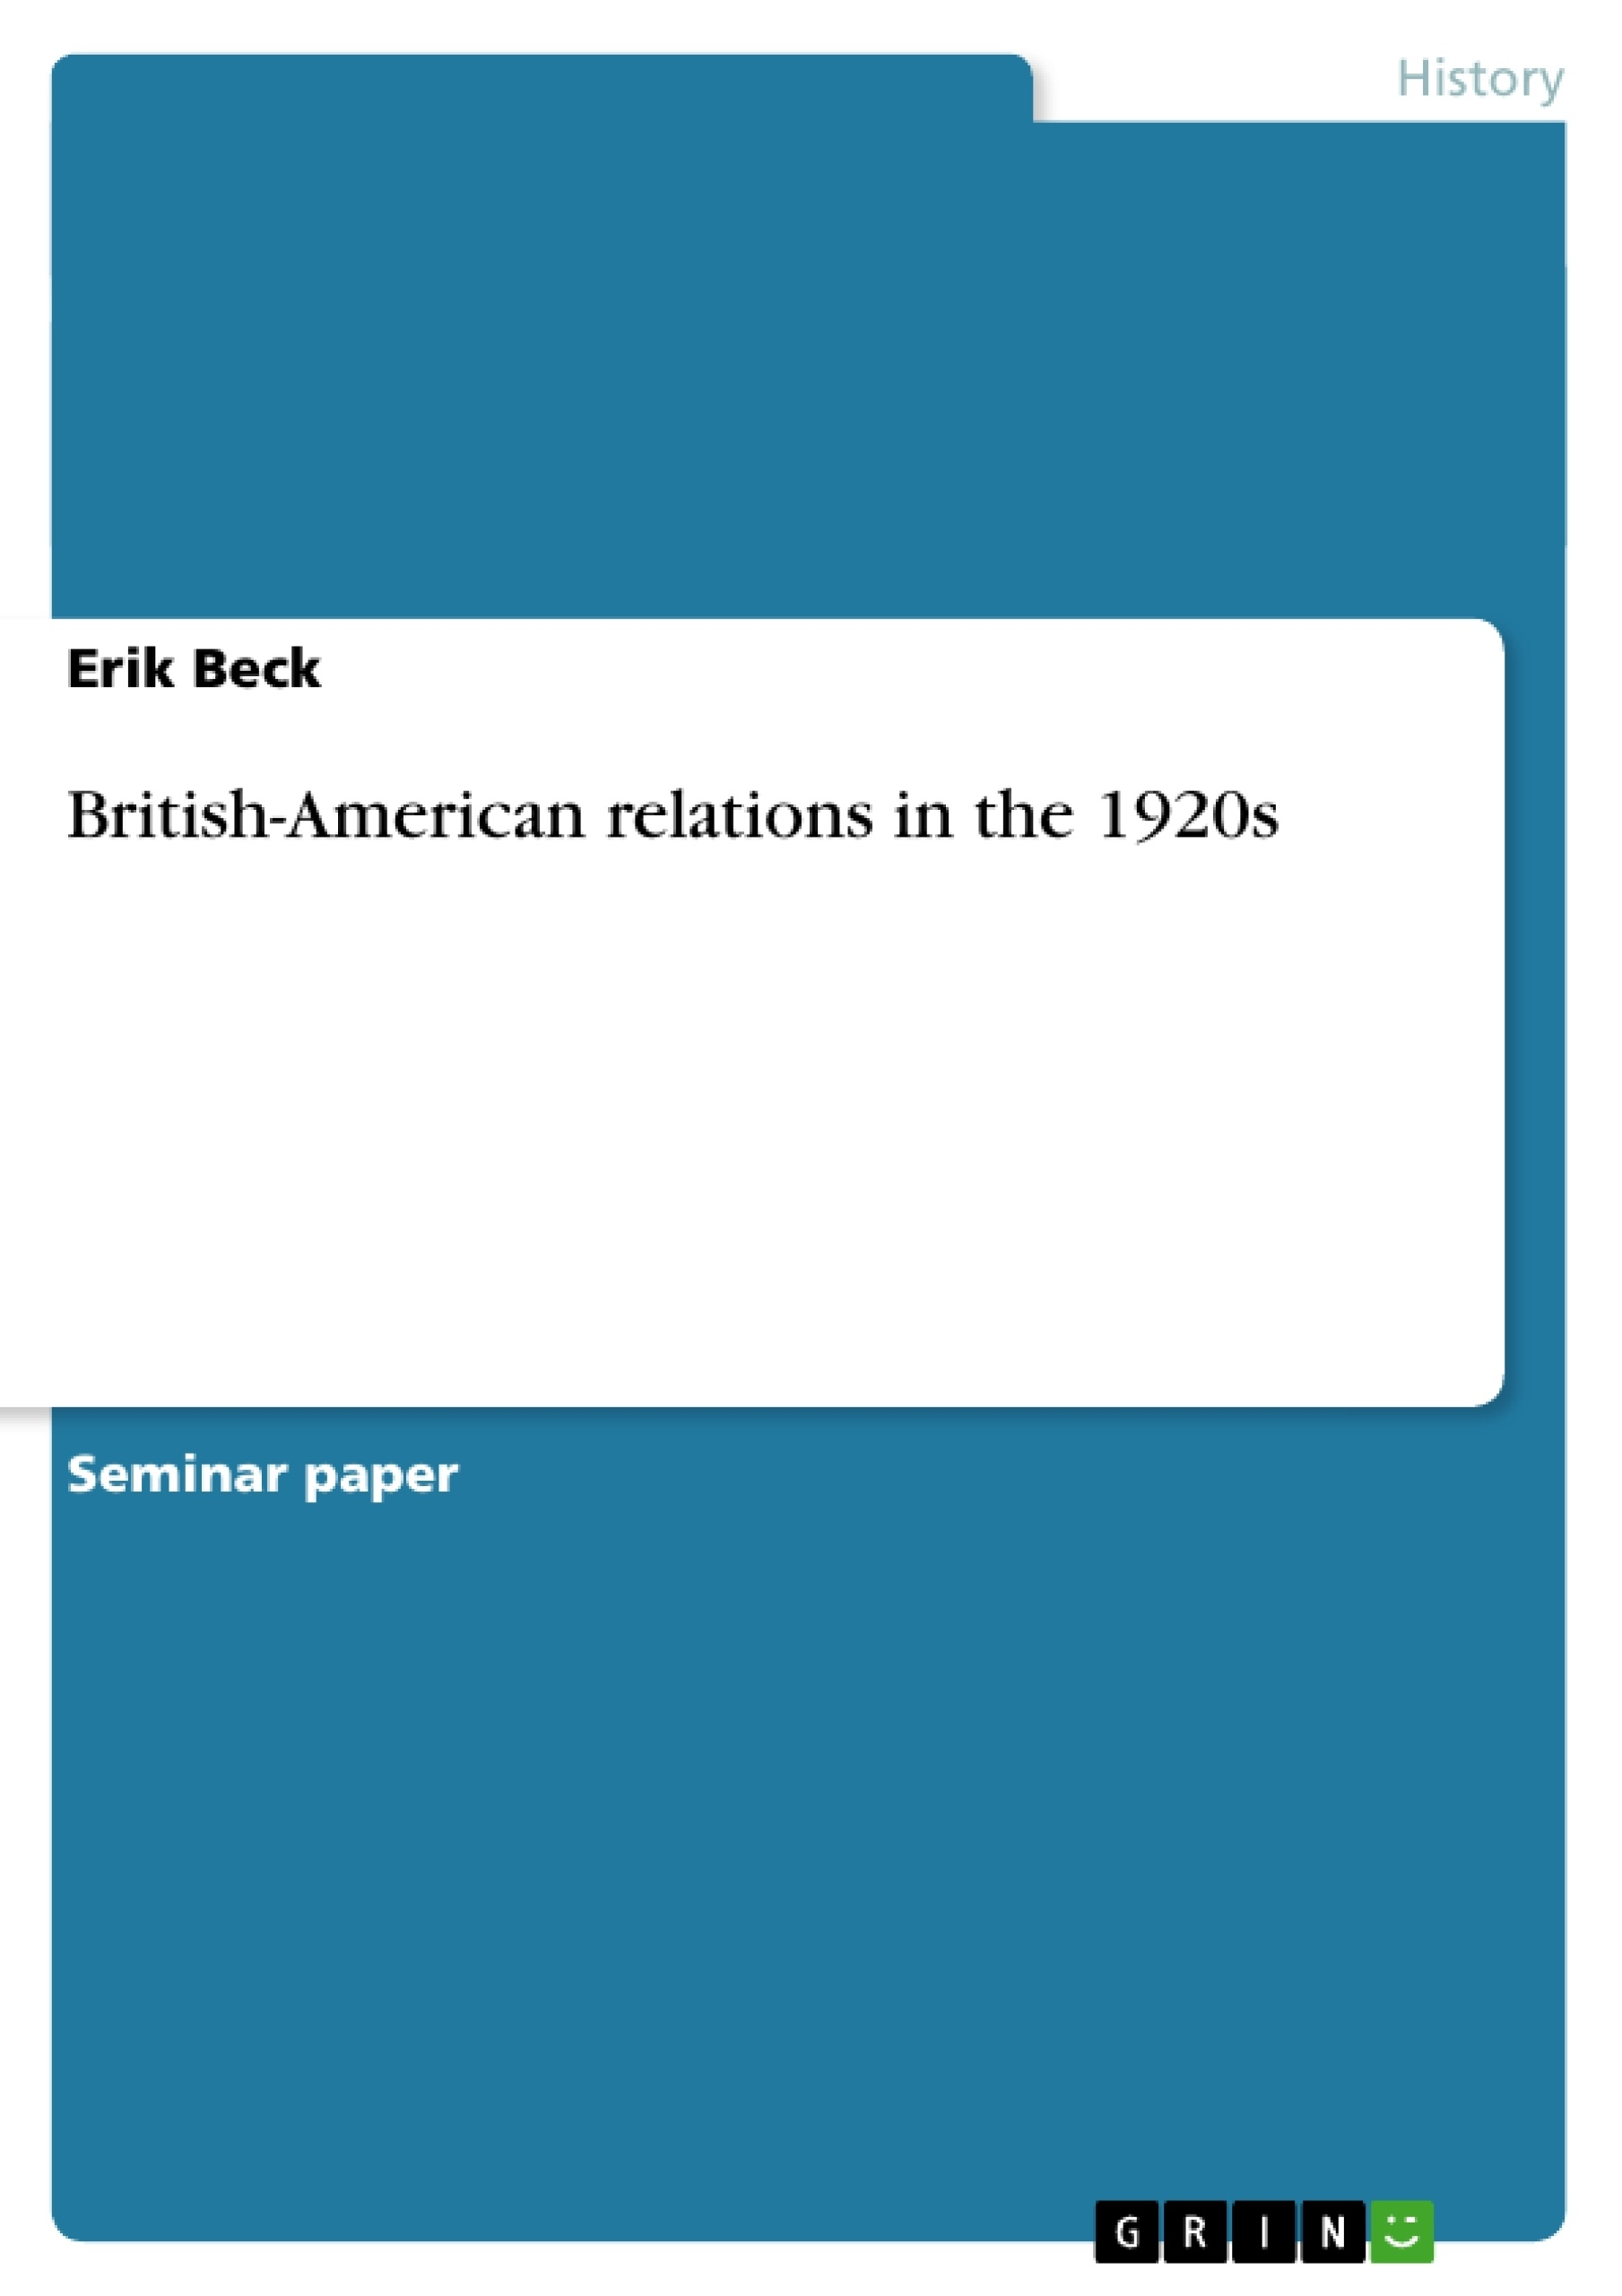 Title: British-American relations in the 1920s